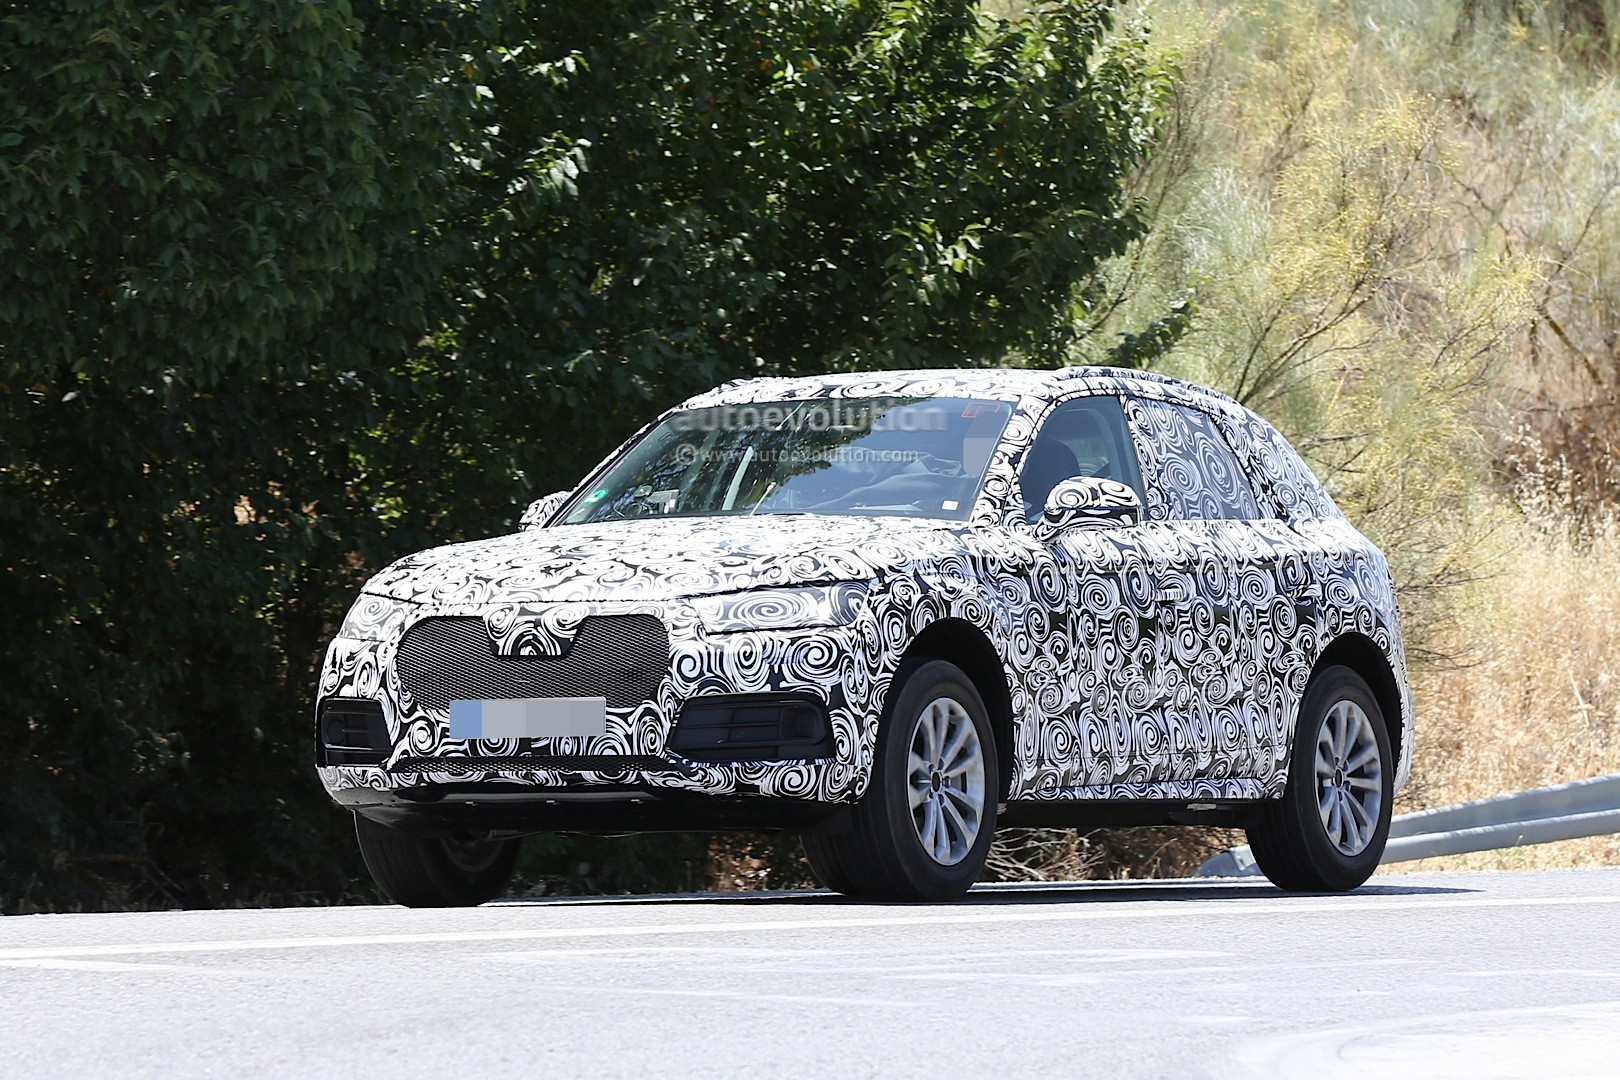 Mercedes Benz Suv Models >> 2017 Audi Q5 Makes Spy Photo Debut with New Family Face - autoevolution